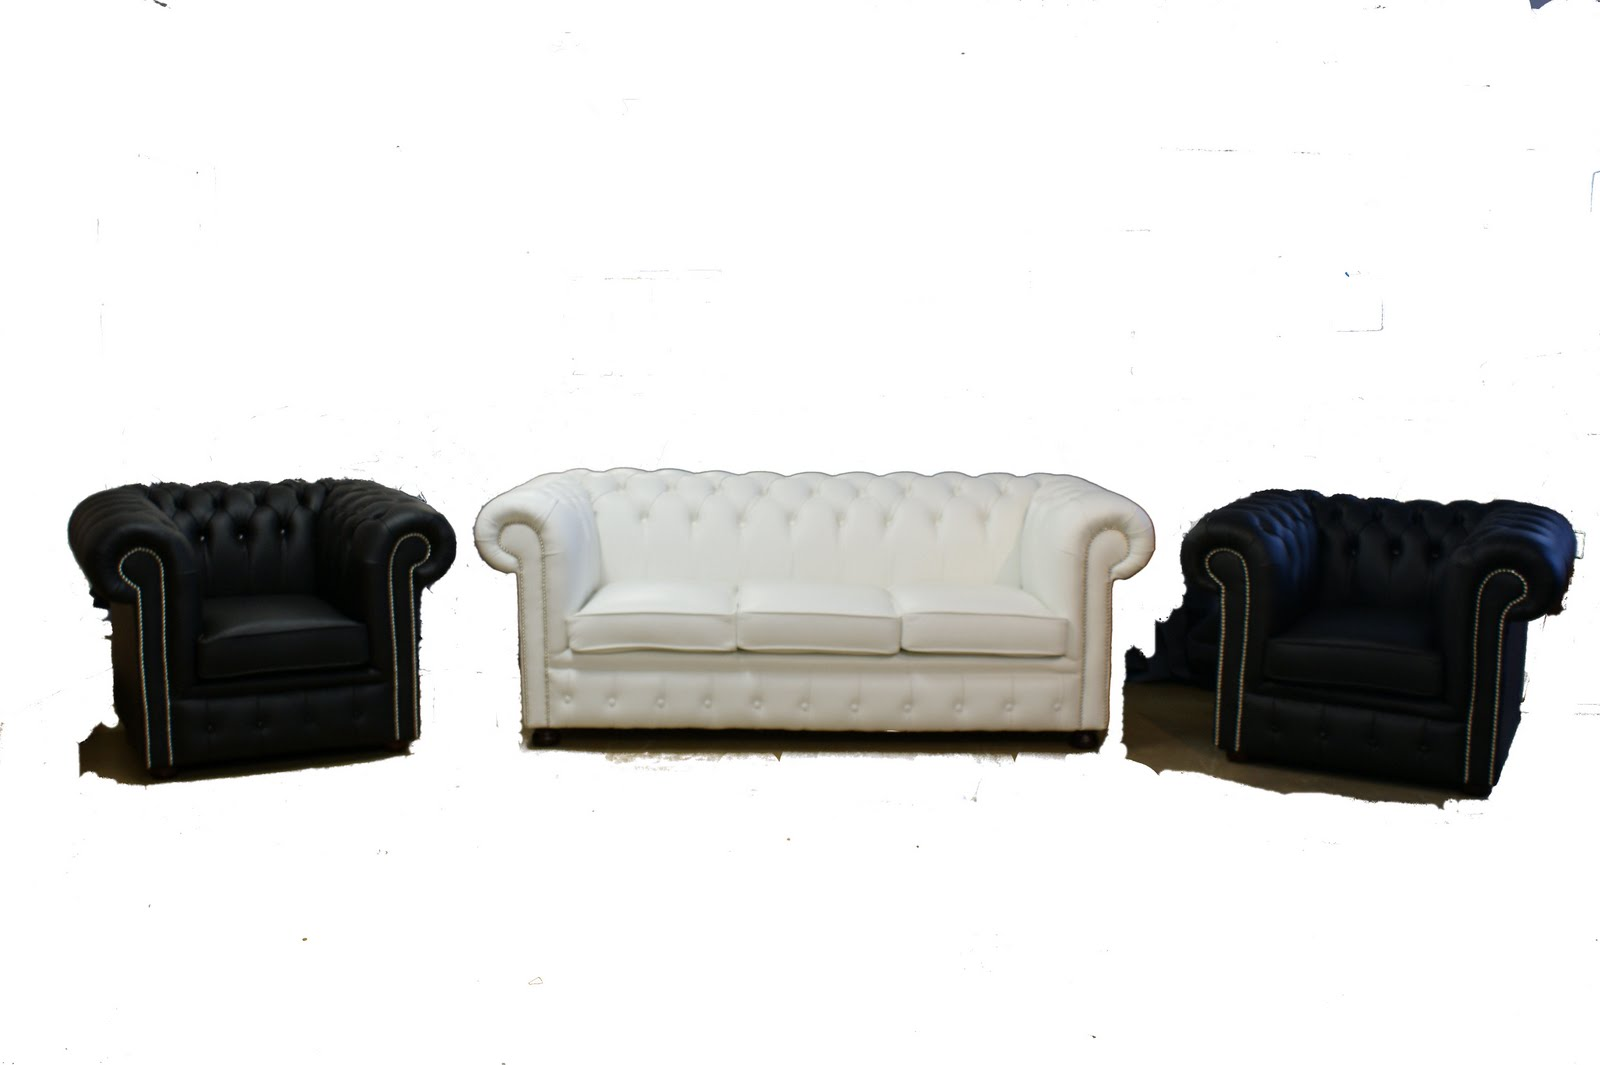 chesterfield sofas mitchell gold chesterfield sofa. Black Bedroom Furniture Sets. Home Design Ideas